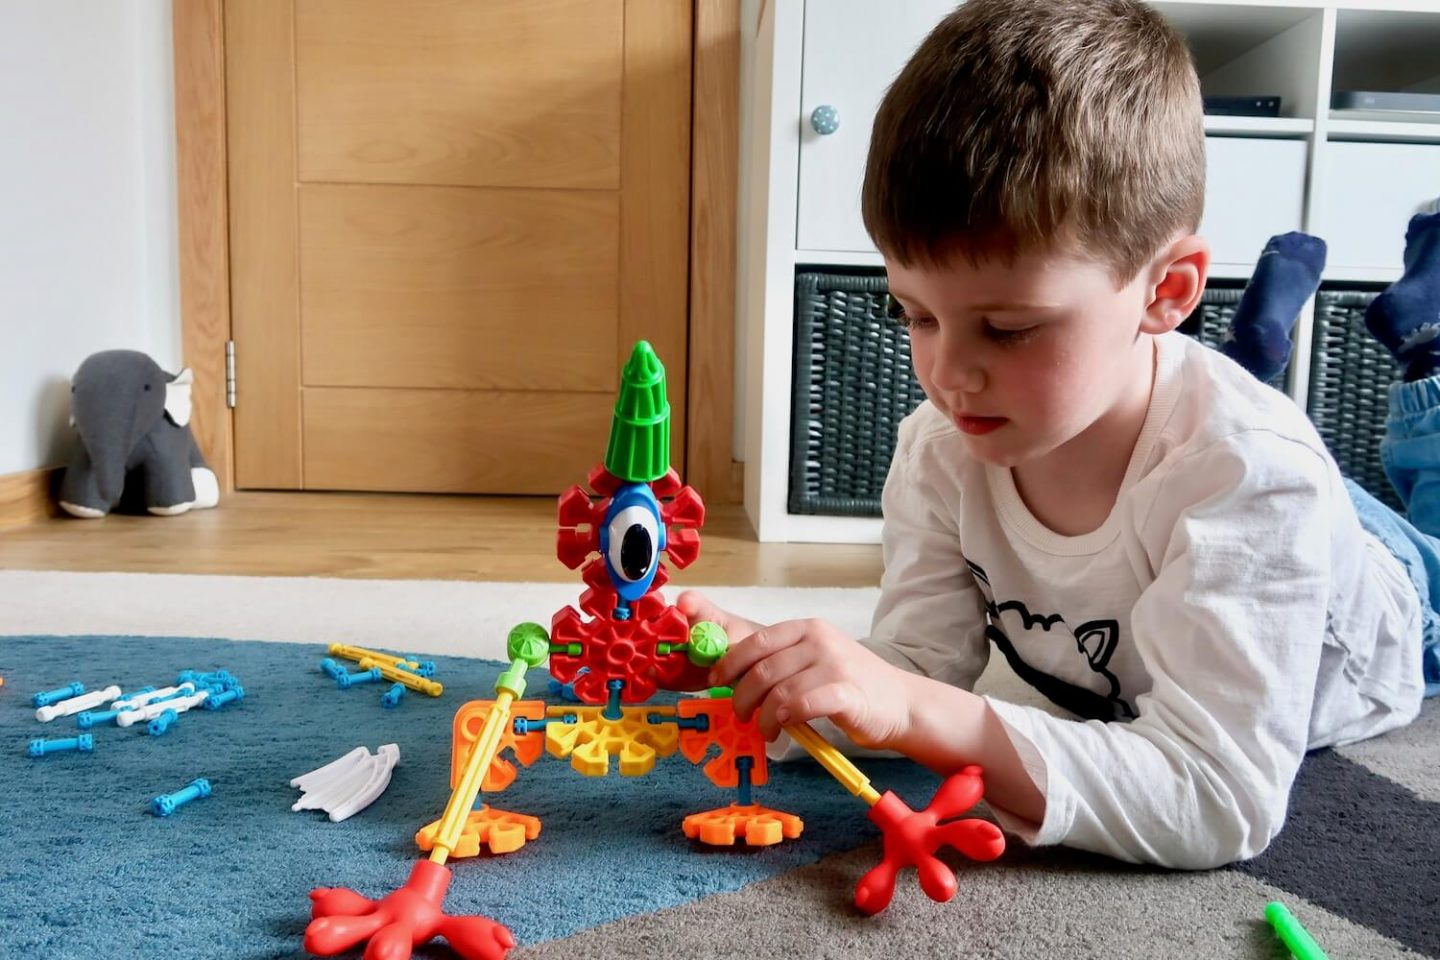 A young boy holding the leg of a K'Nex creature he has made